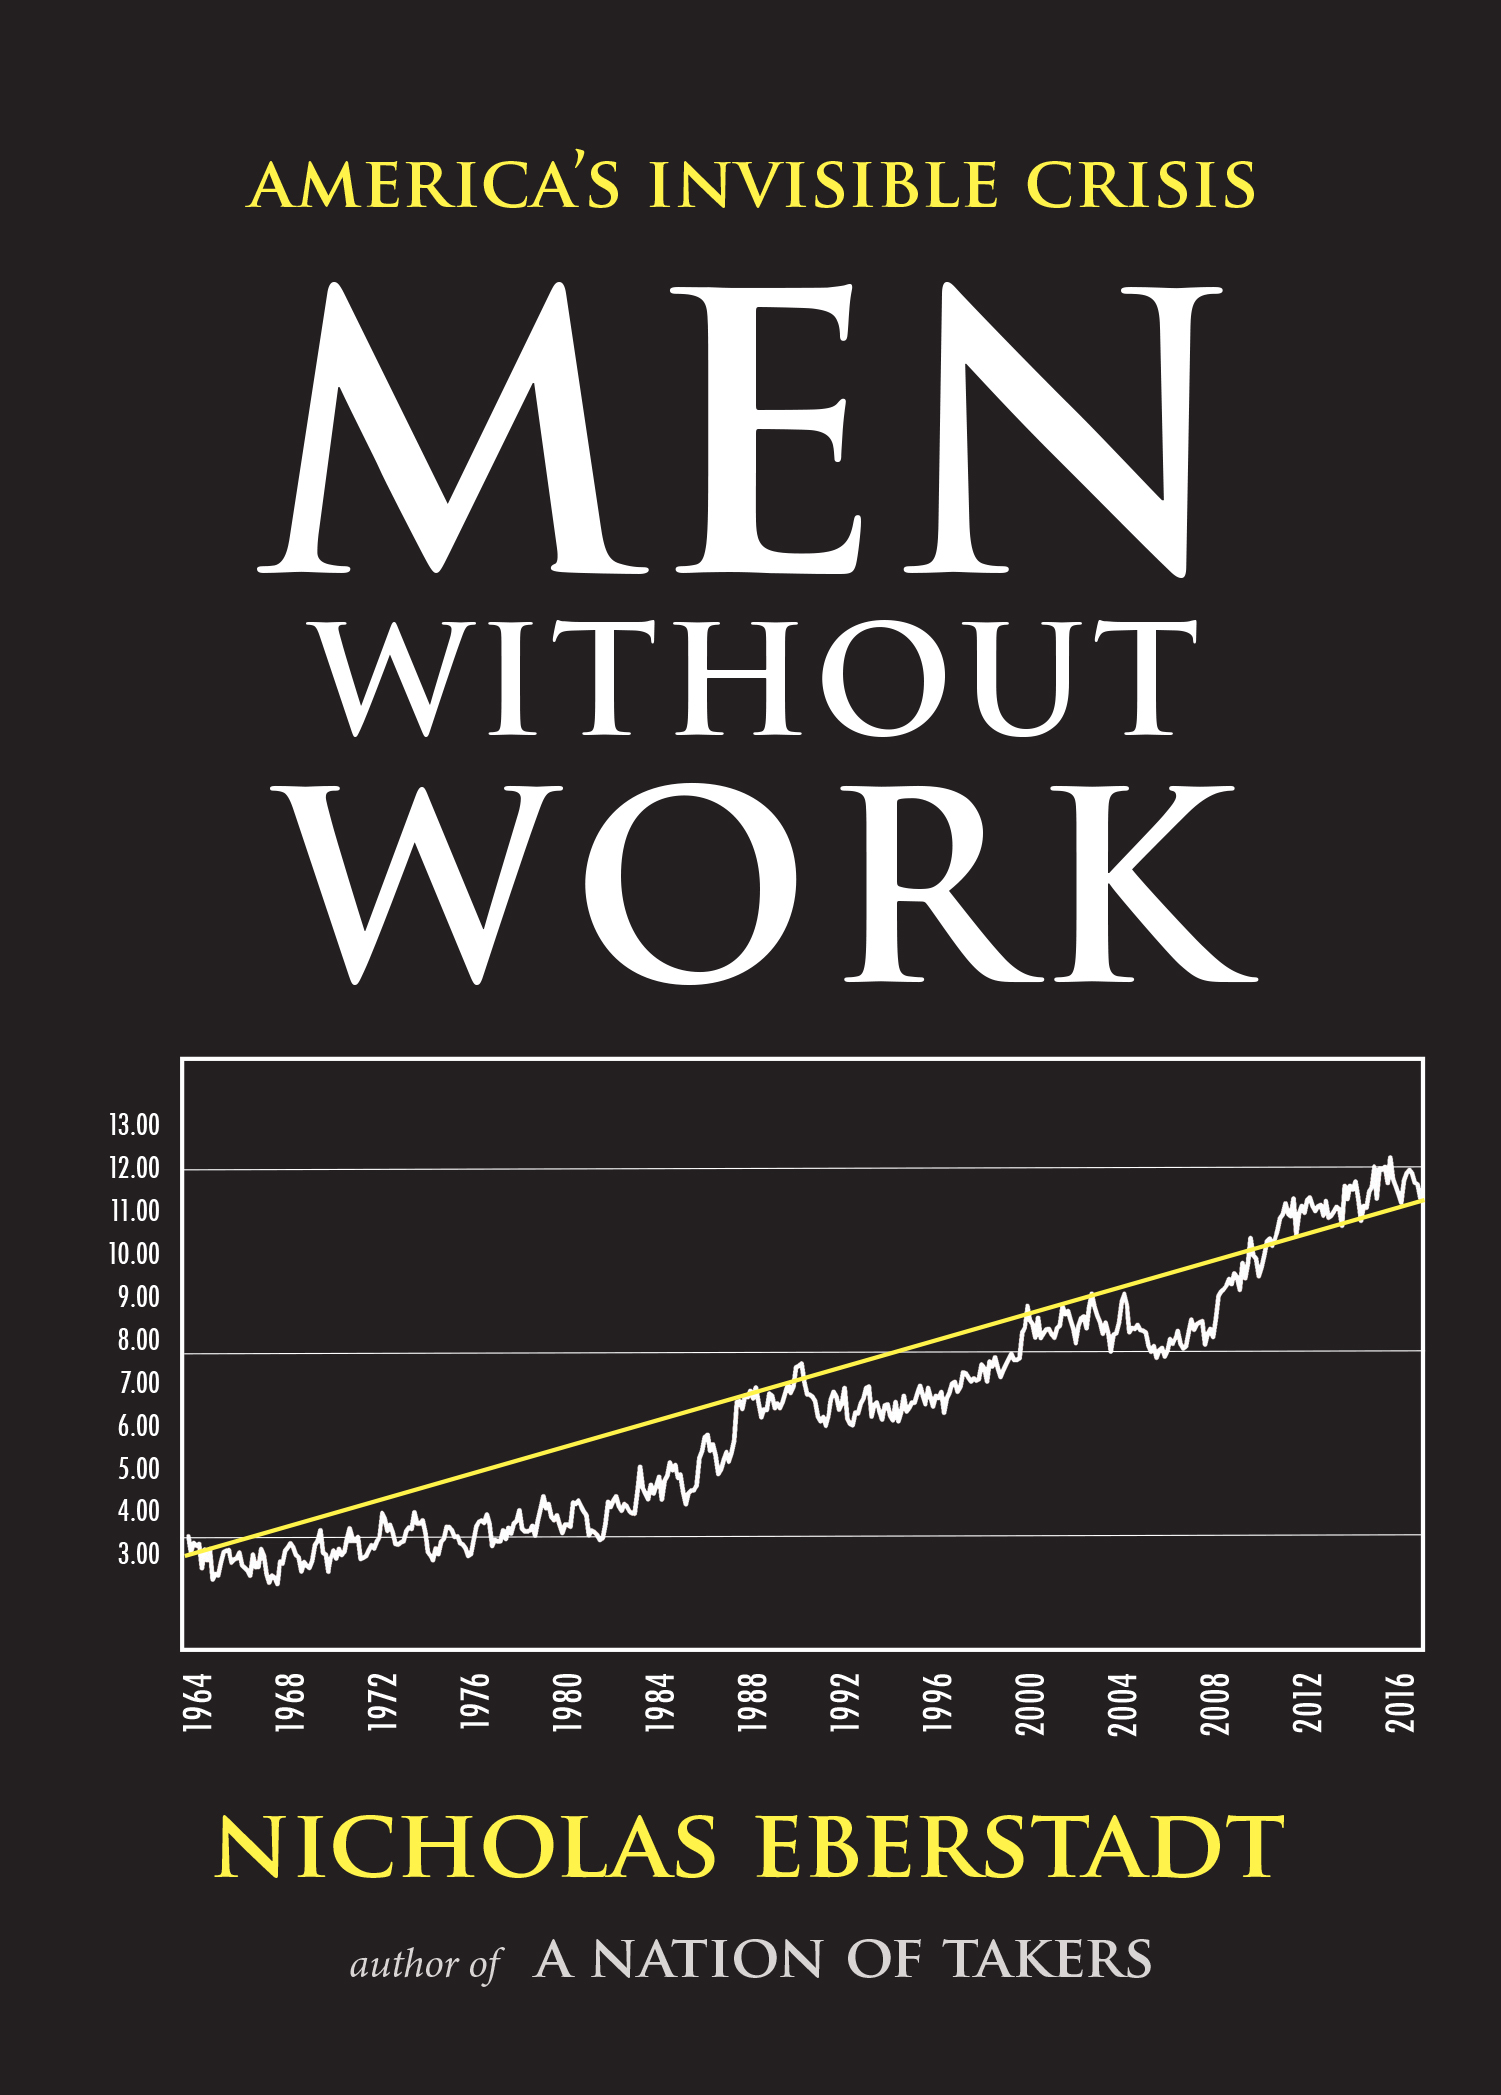 Book cover of Men without work by Nicholas Eberstadt.